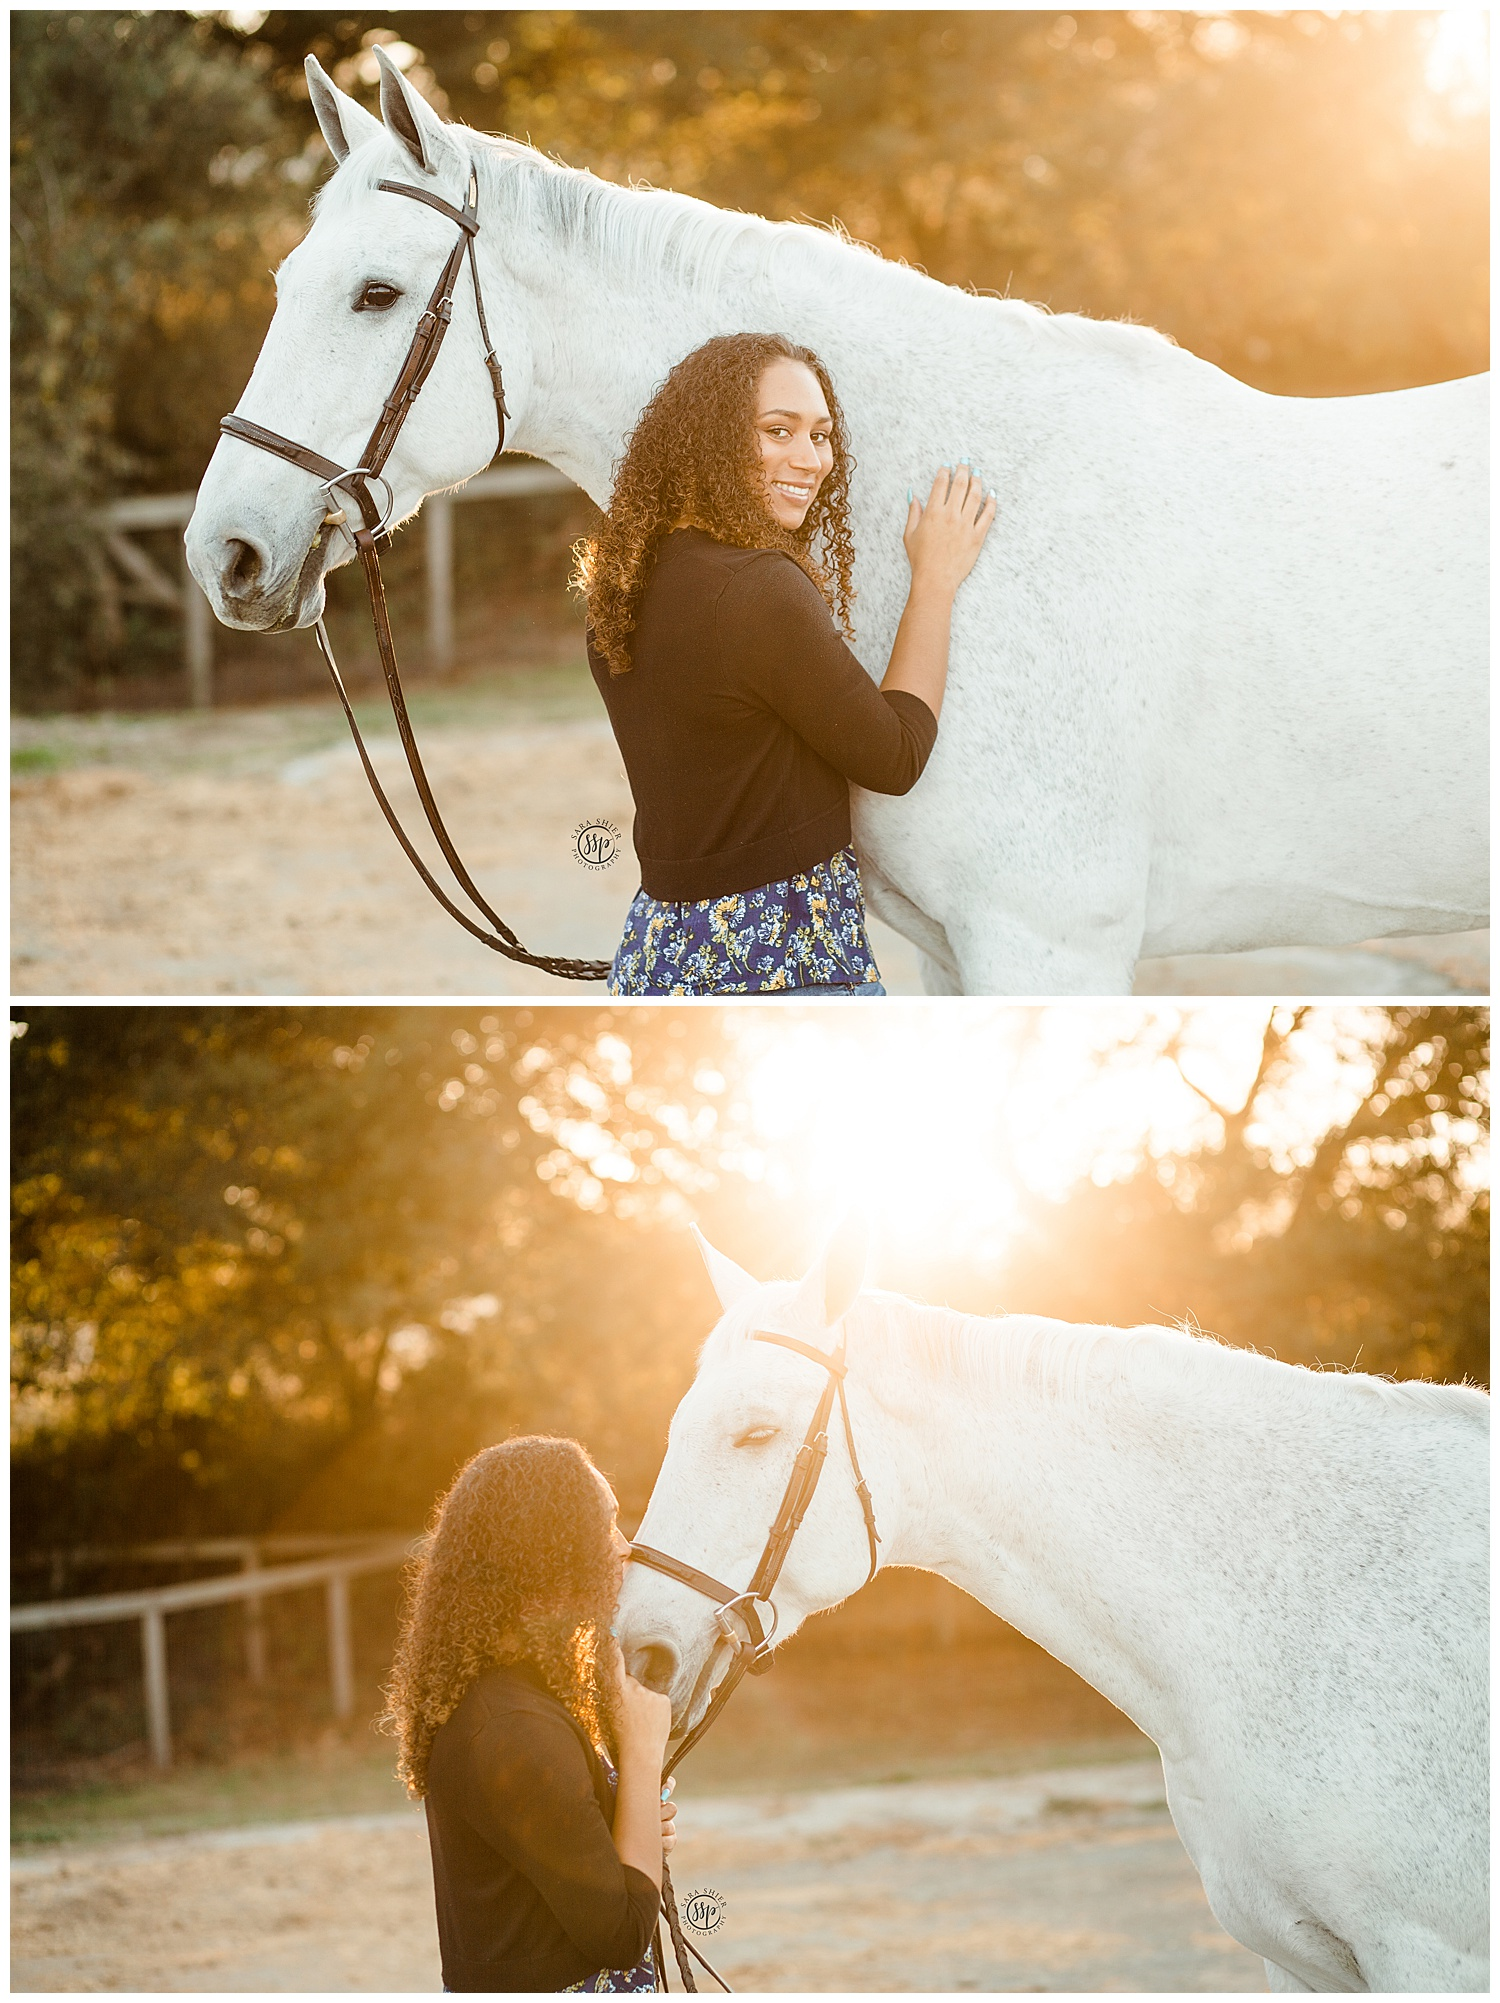 Black Background Horse Rider Equine Photographer Southern California Sara Shier Photography SoCal Equestrian Cowgirl_0247.jpg